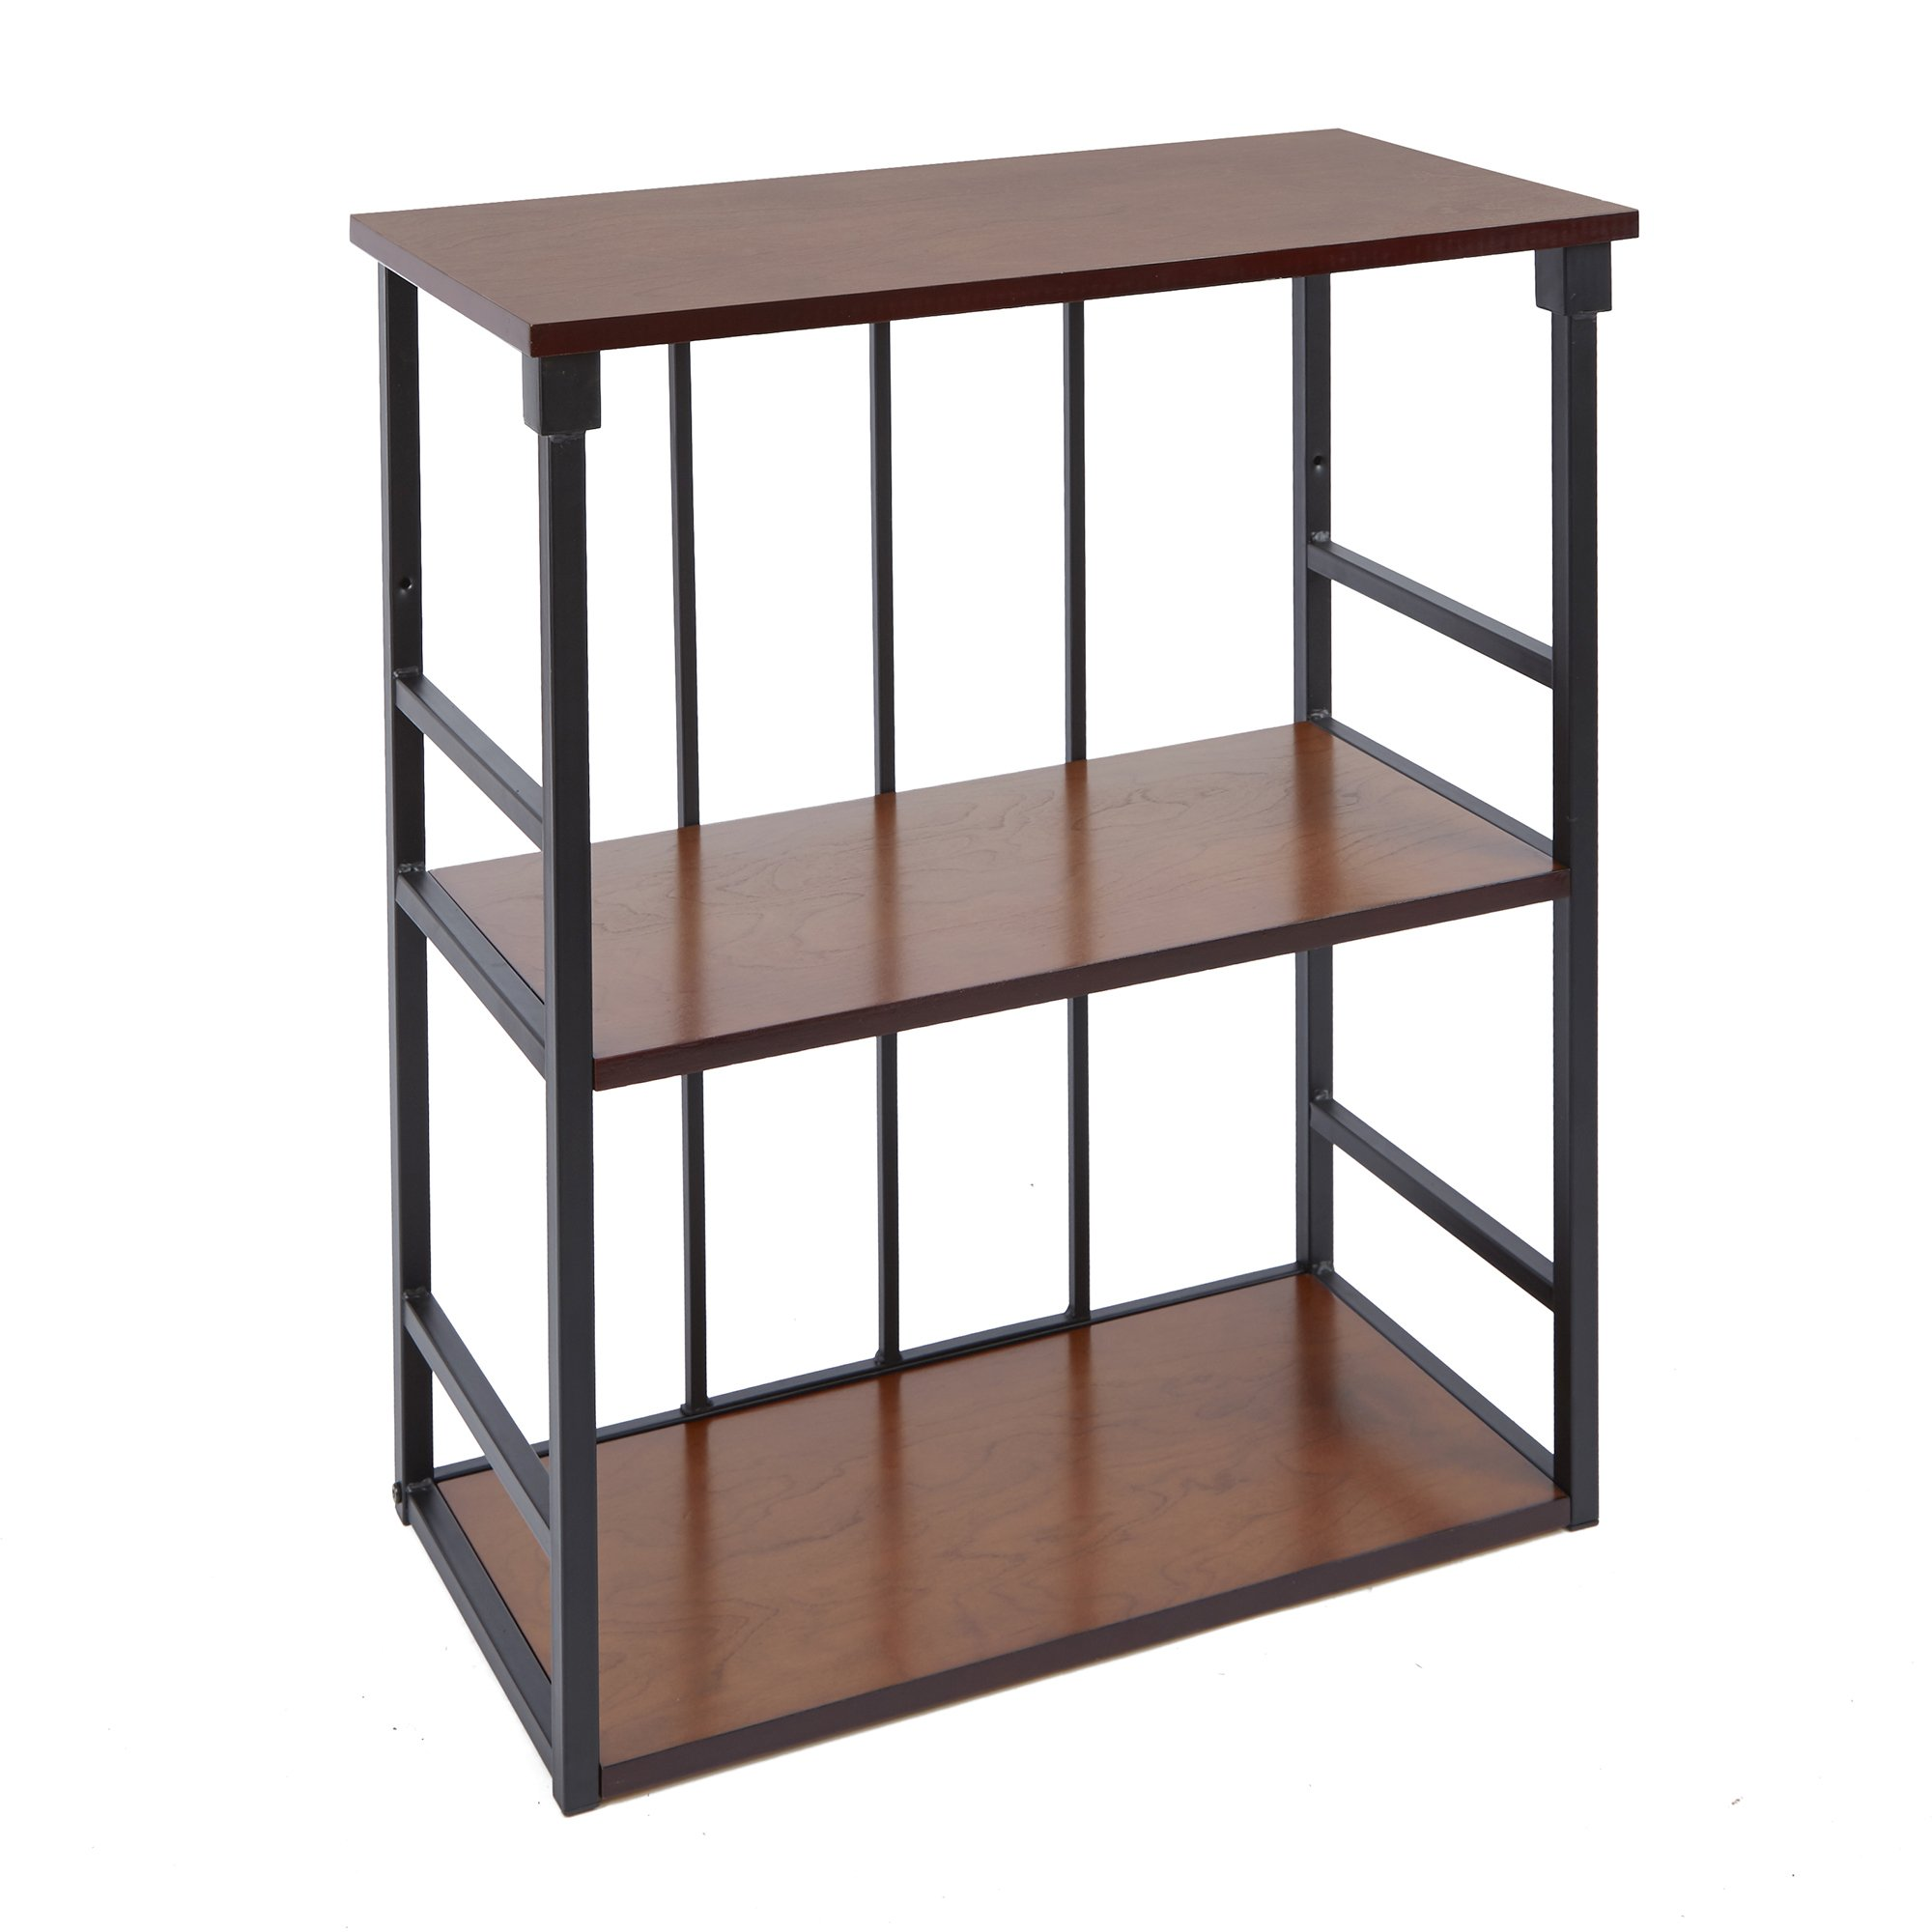 Silverwood Mixed Material Bathroom Collection 3-Tier Wall Shelf 3, 24'' W x 28'' H, Oil Rubbed Bronze by Silverwood